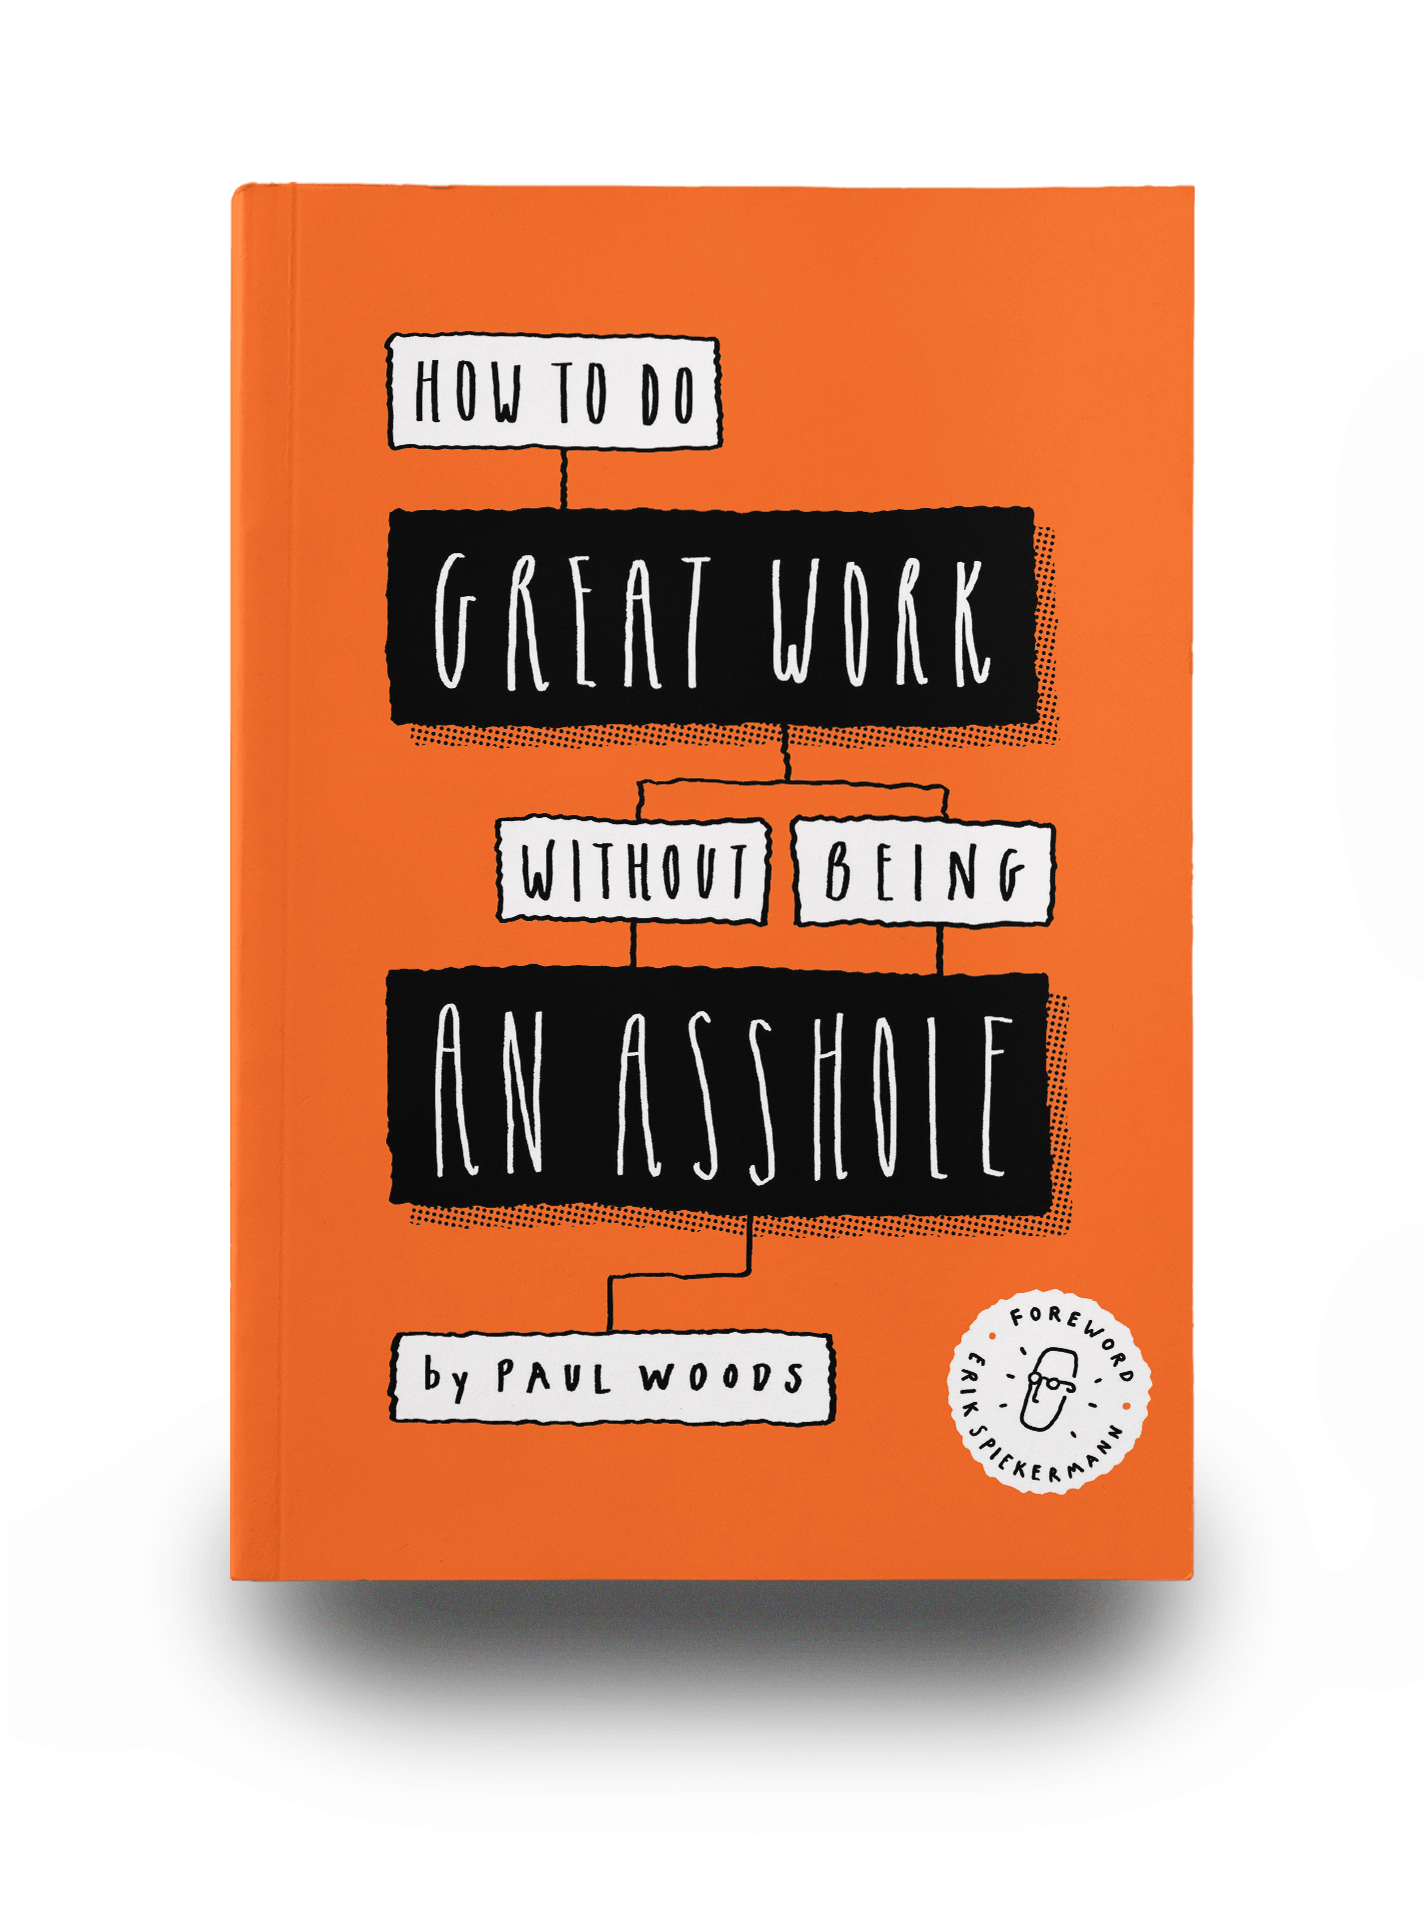 how-to-do-great-work-without-being-an-asshole-paul-woods